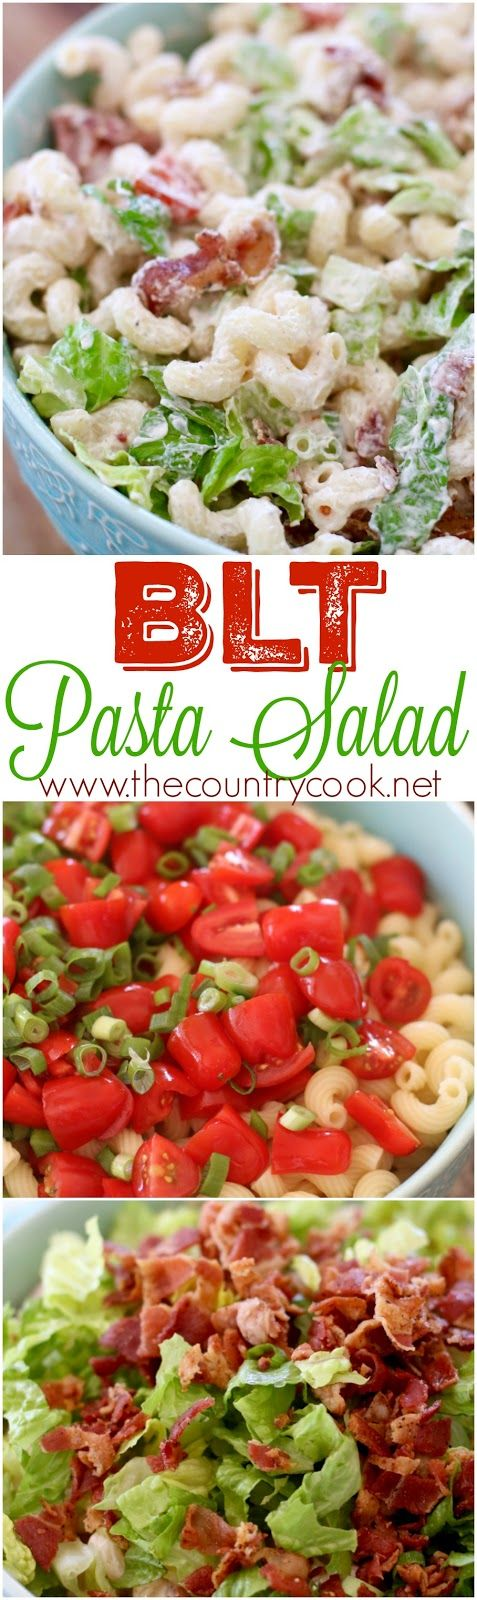 The Country Cook: BLT Pasta Salad {Cookbook Giveaway}